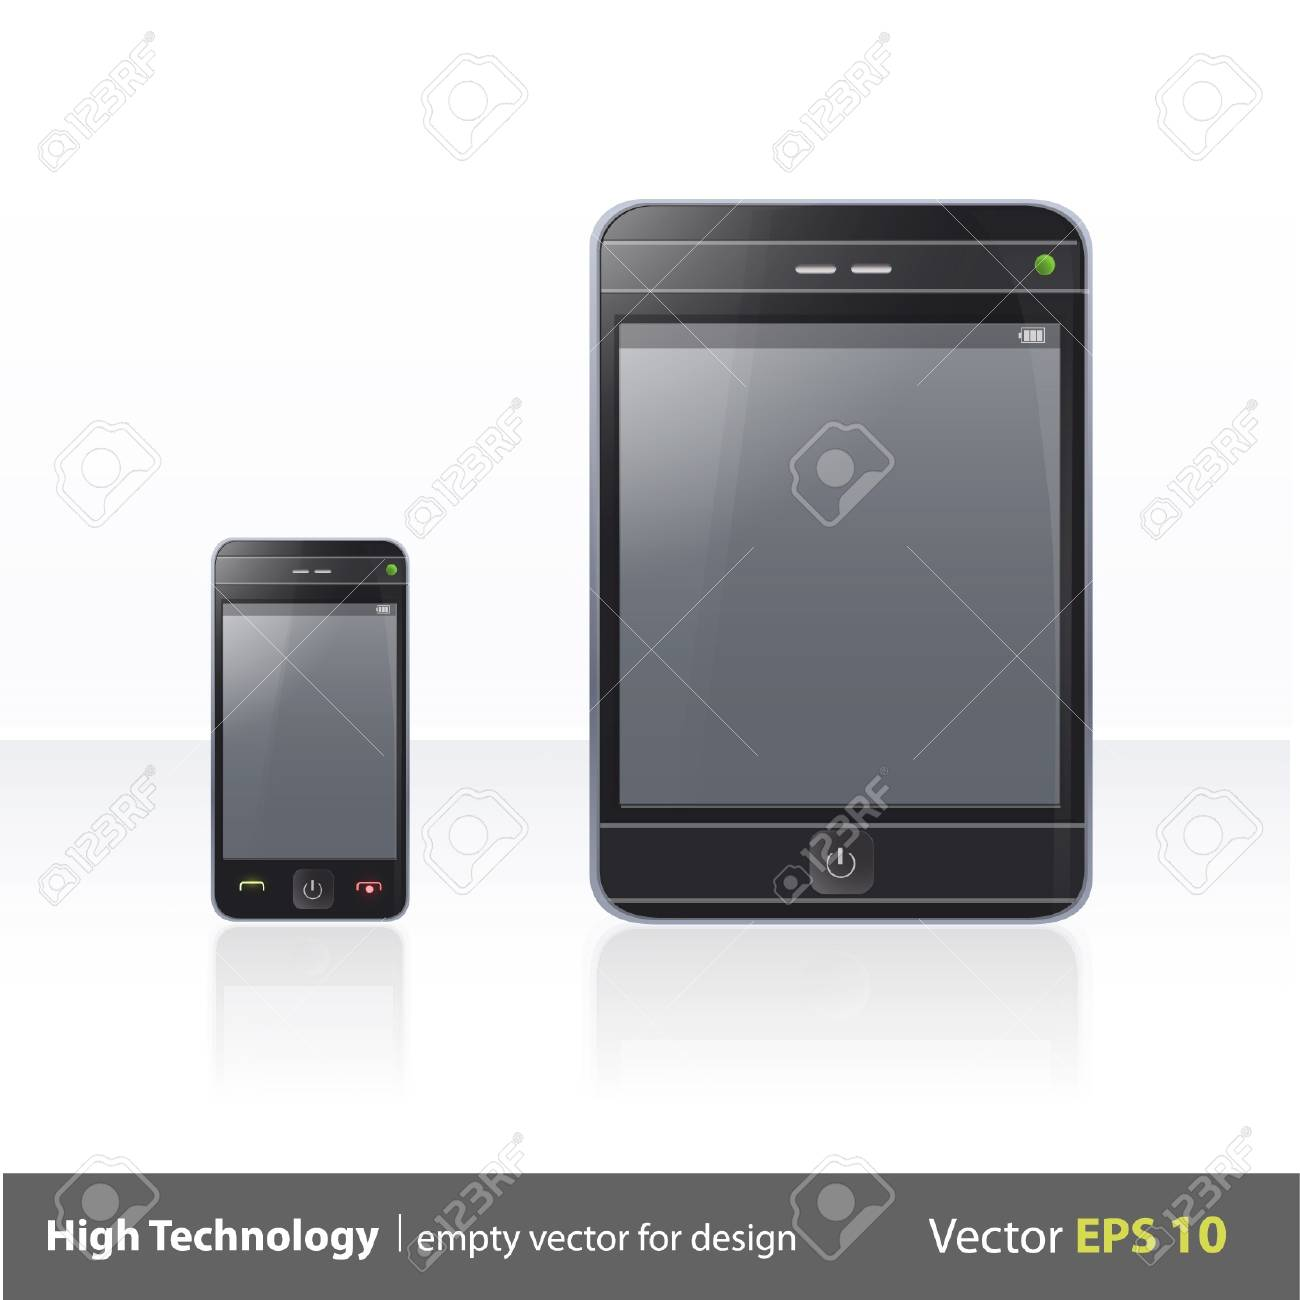 Realistic Phone and Pad illustration Stock Vector - 17343393